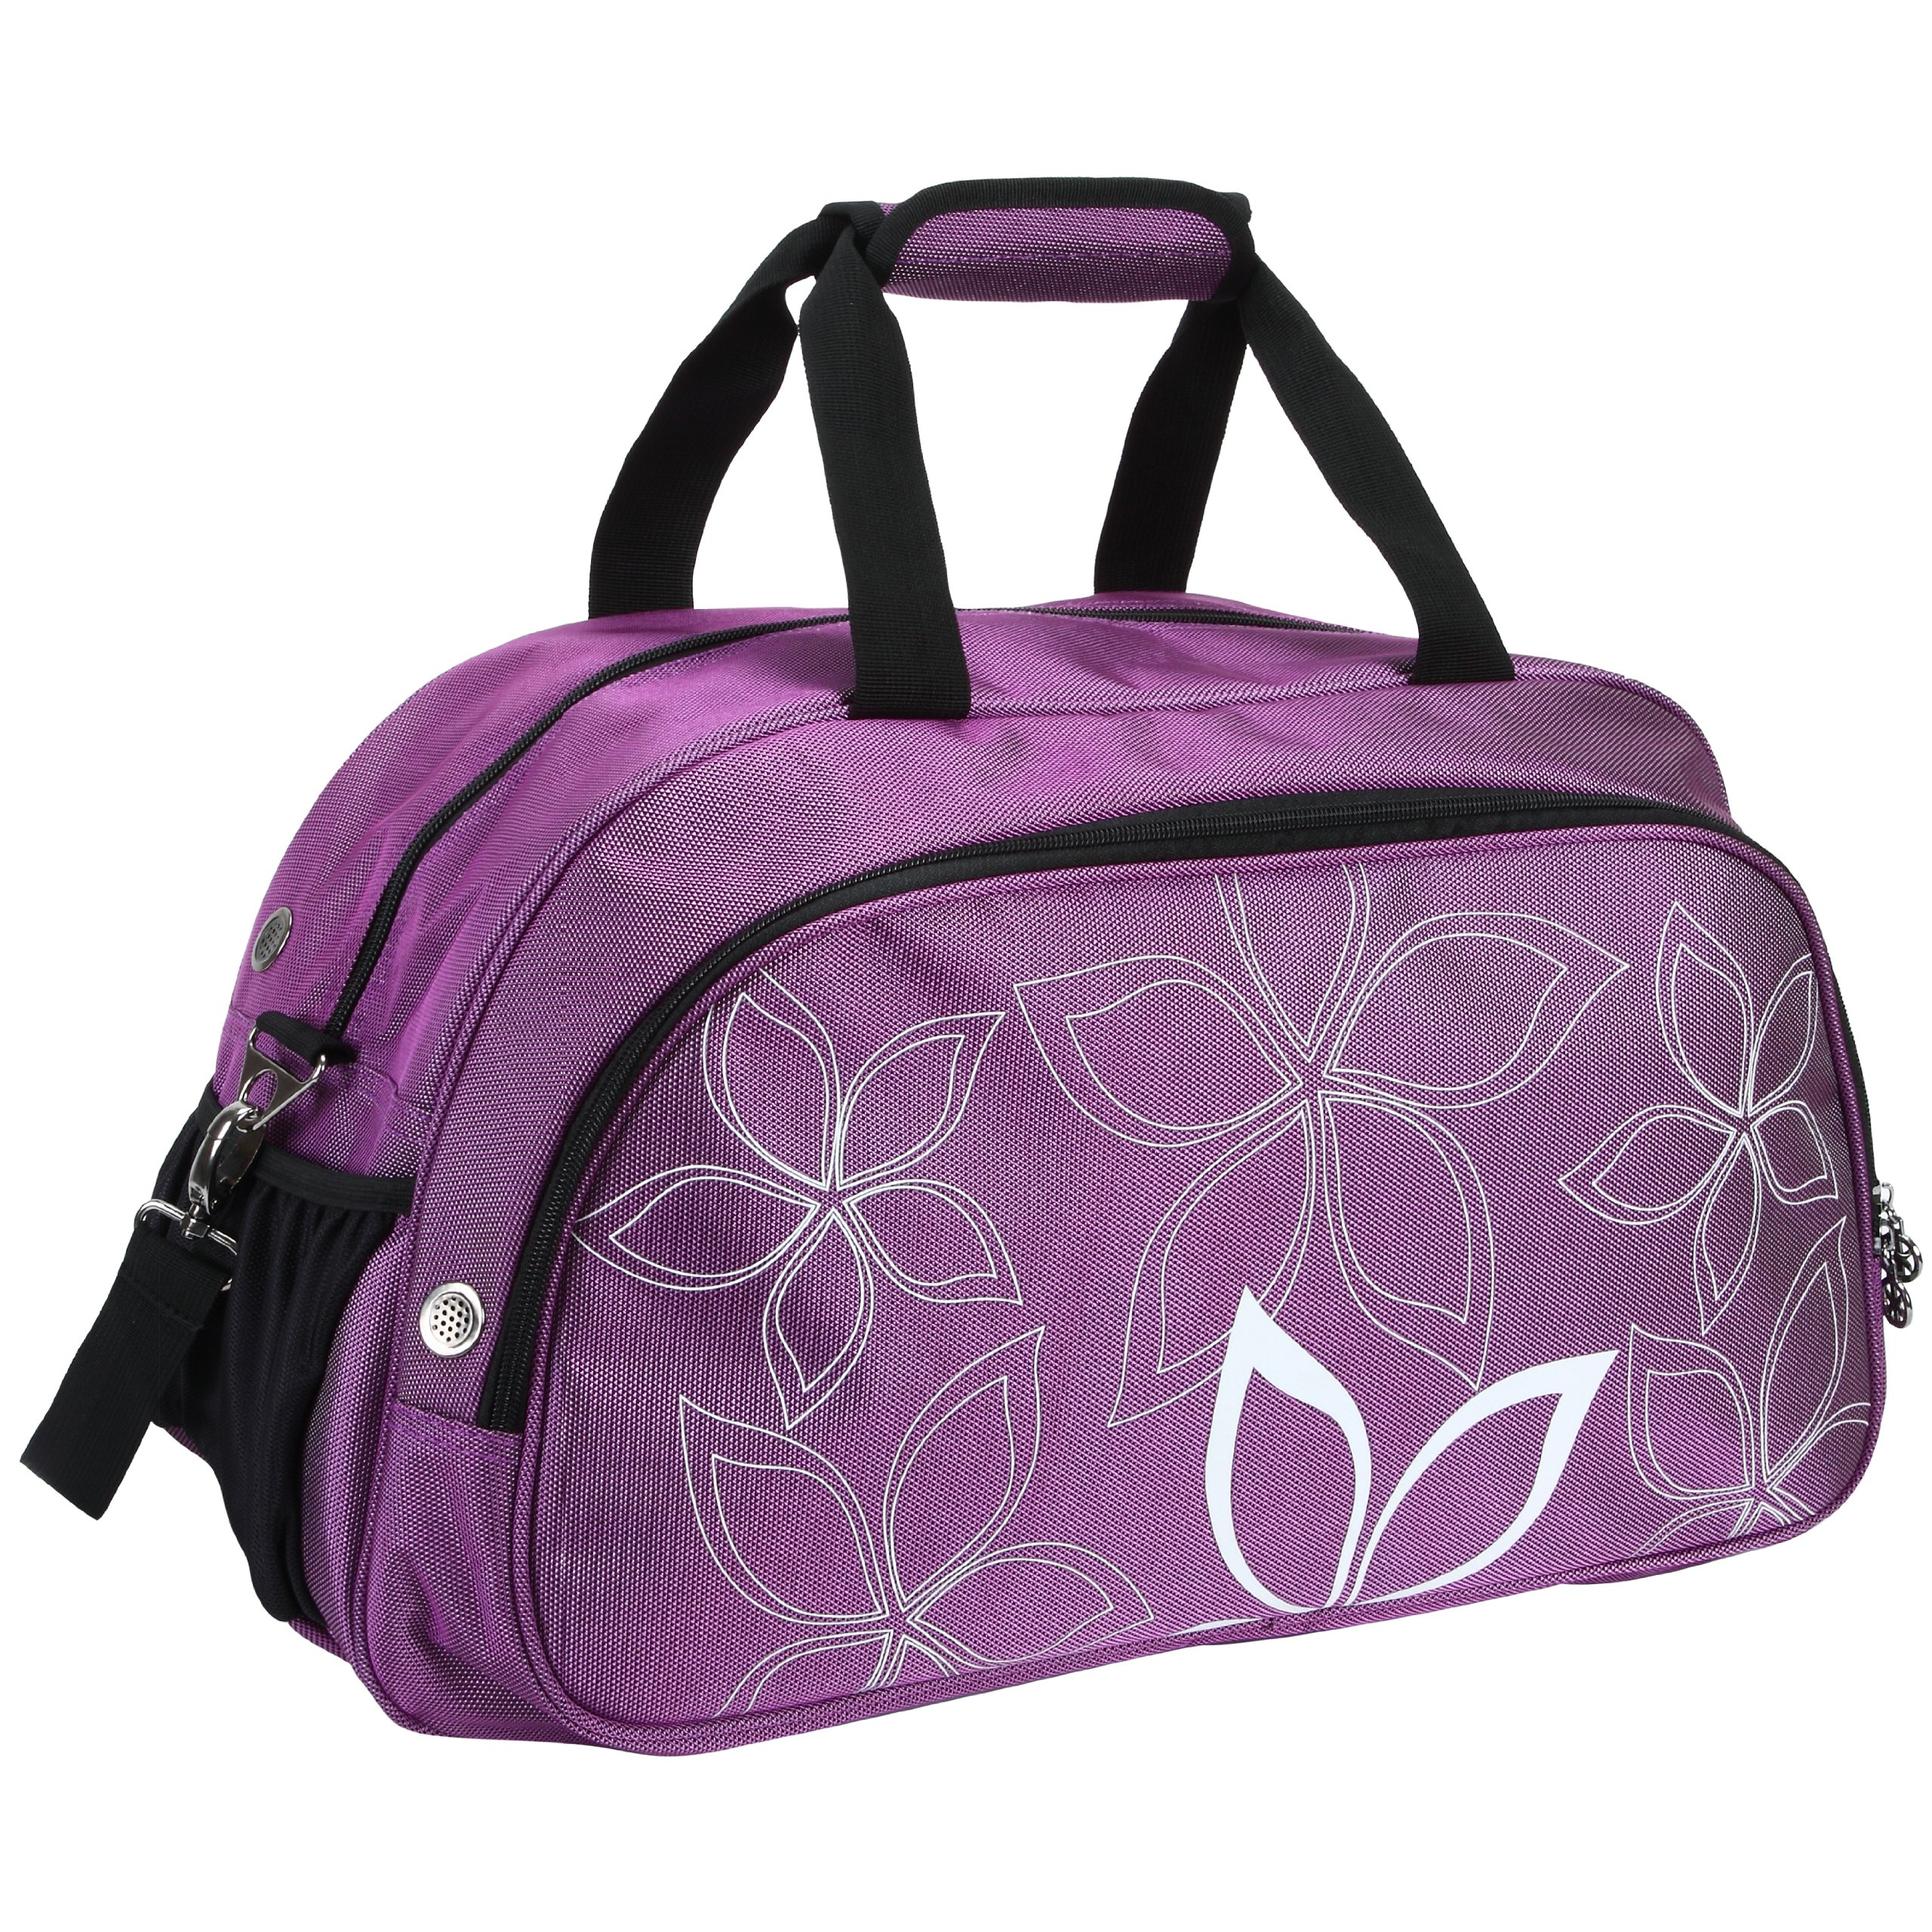 20'' Fashionable Flowers Pattern Purple Sports Gym Tote Bag Travel Carryon